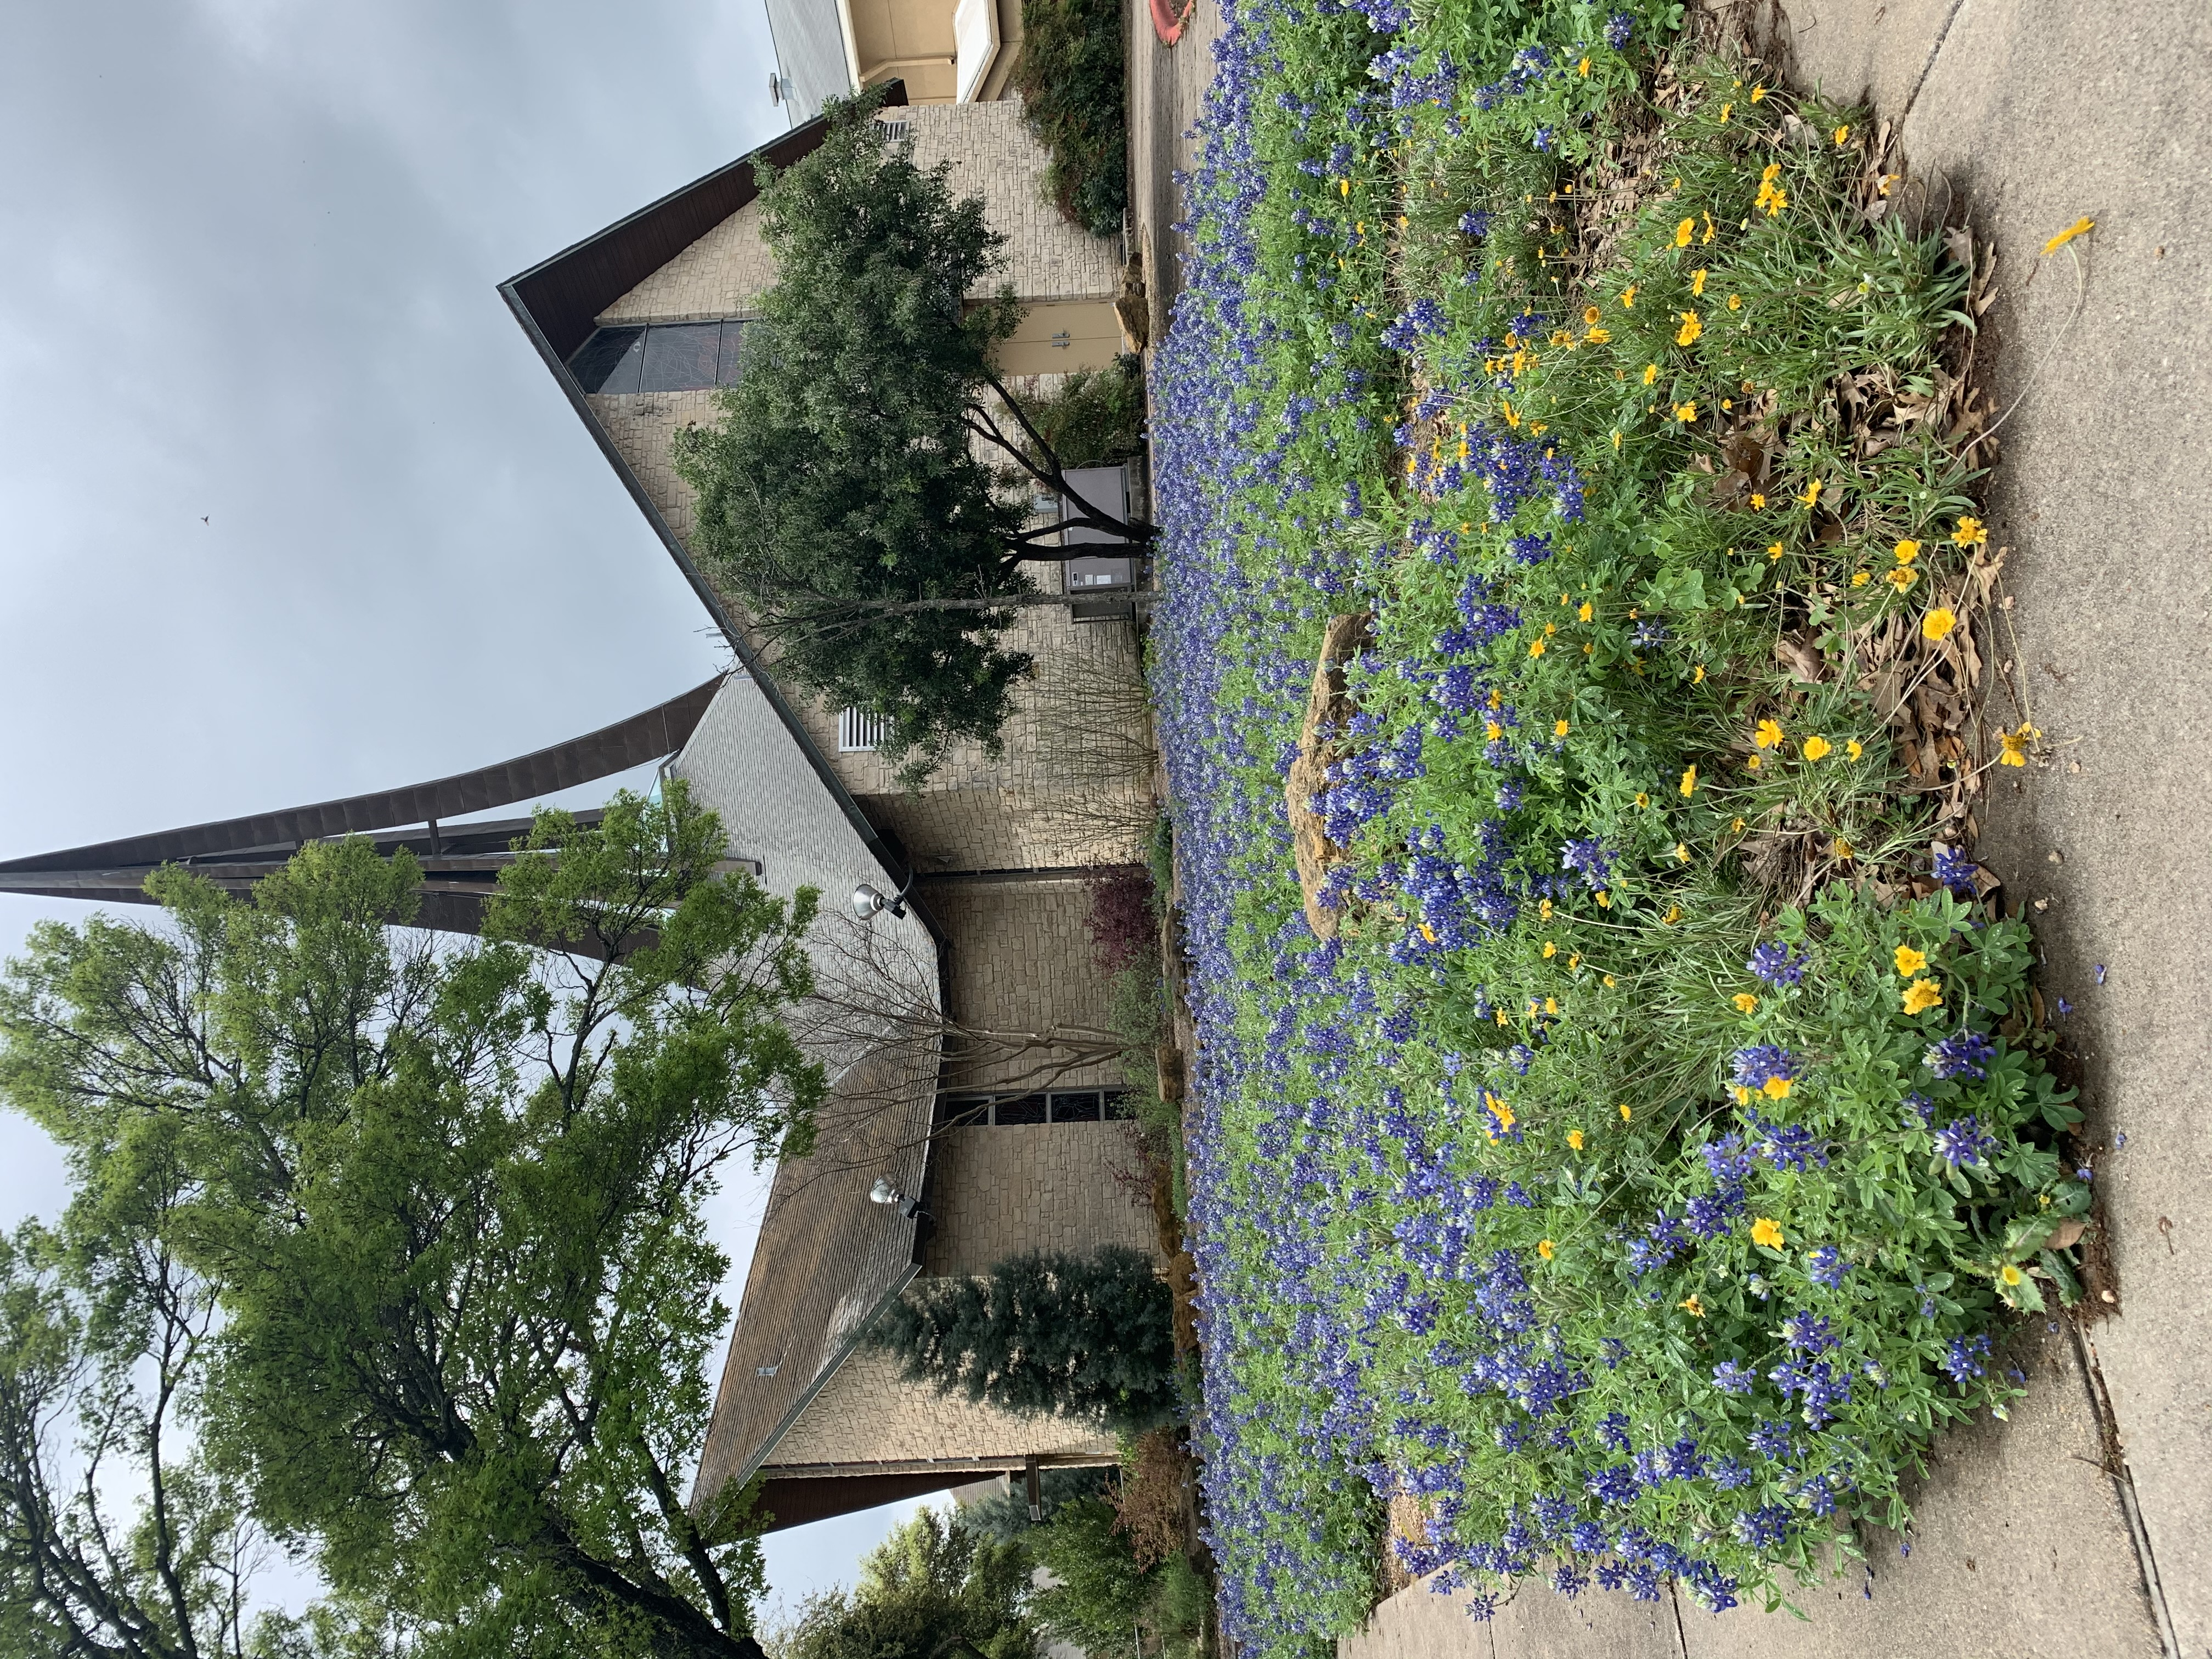 Bluebonnets at Redeemer Austin 1500 W Anderson Lane Austin, Texas 78757 (Courtesy Janet Mandeville)